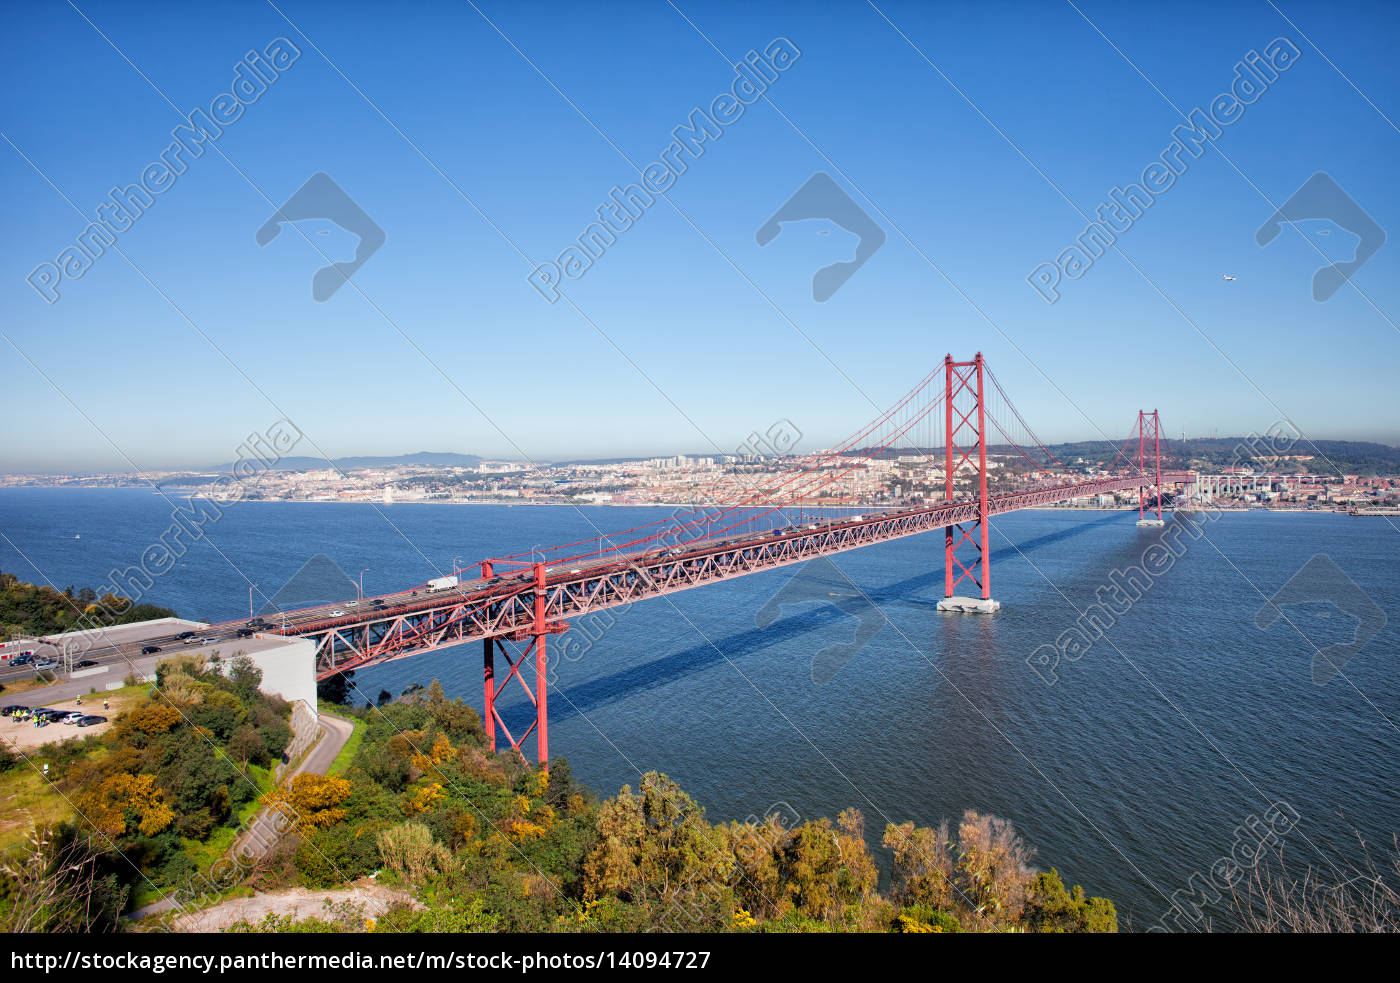 25, de, abril, bridge, in, portugal - 14094727